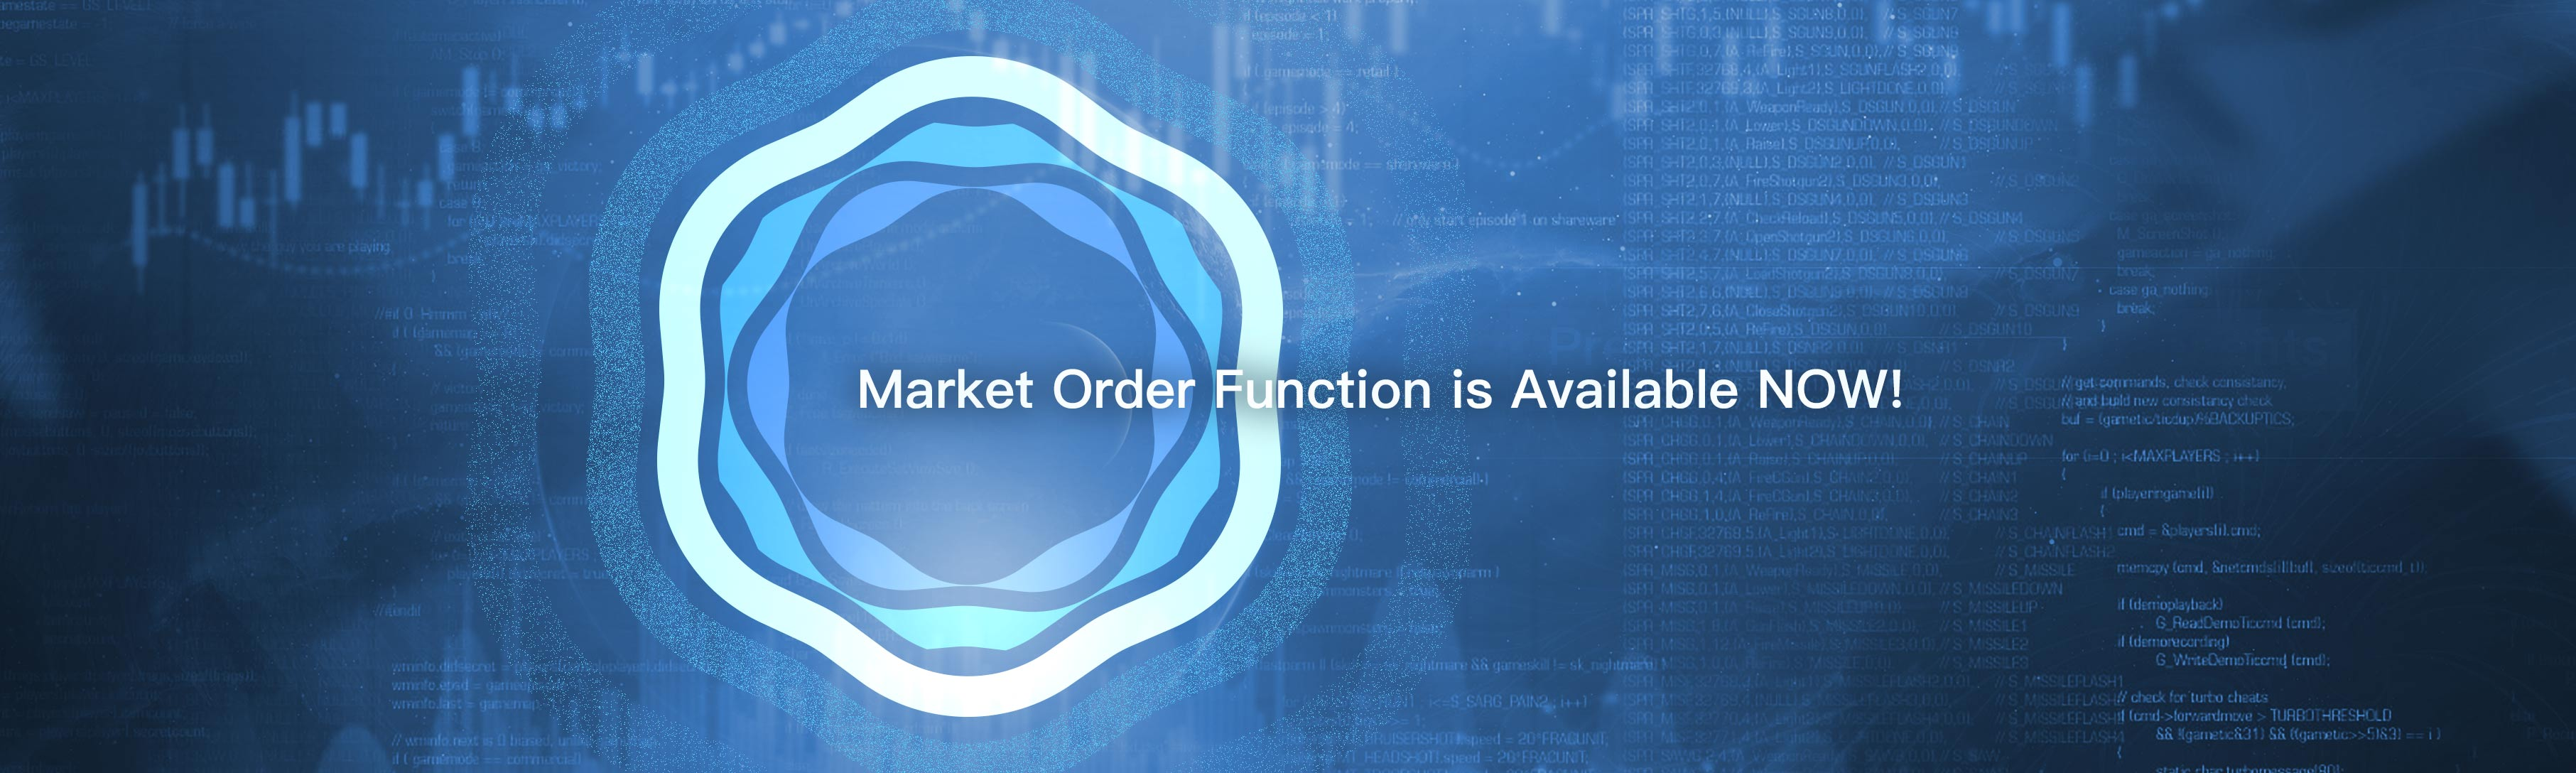 https://support.oceanex.pro/hc/en-us/articles/360027244011-Market-Order-Function-is-Available